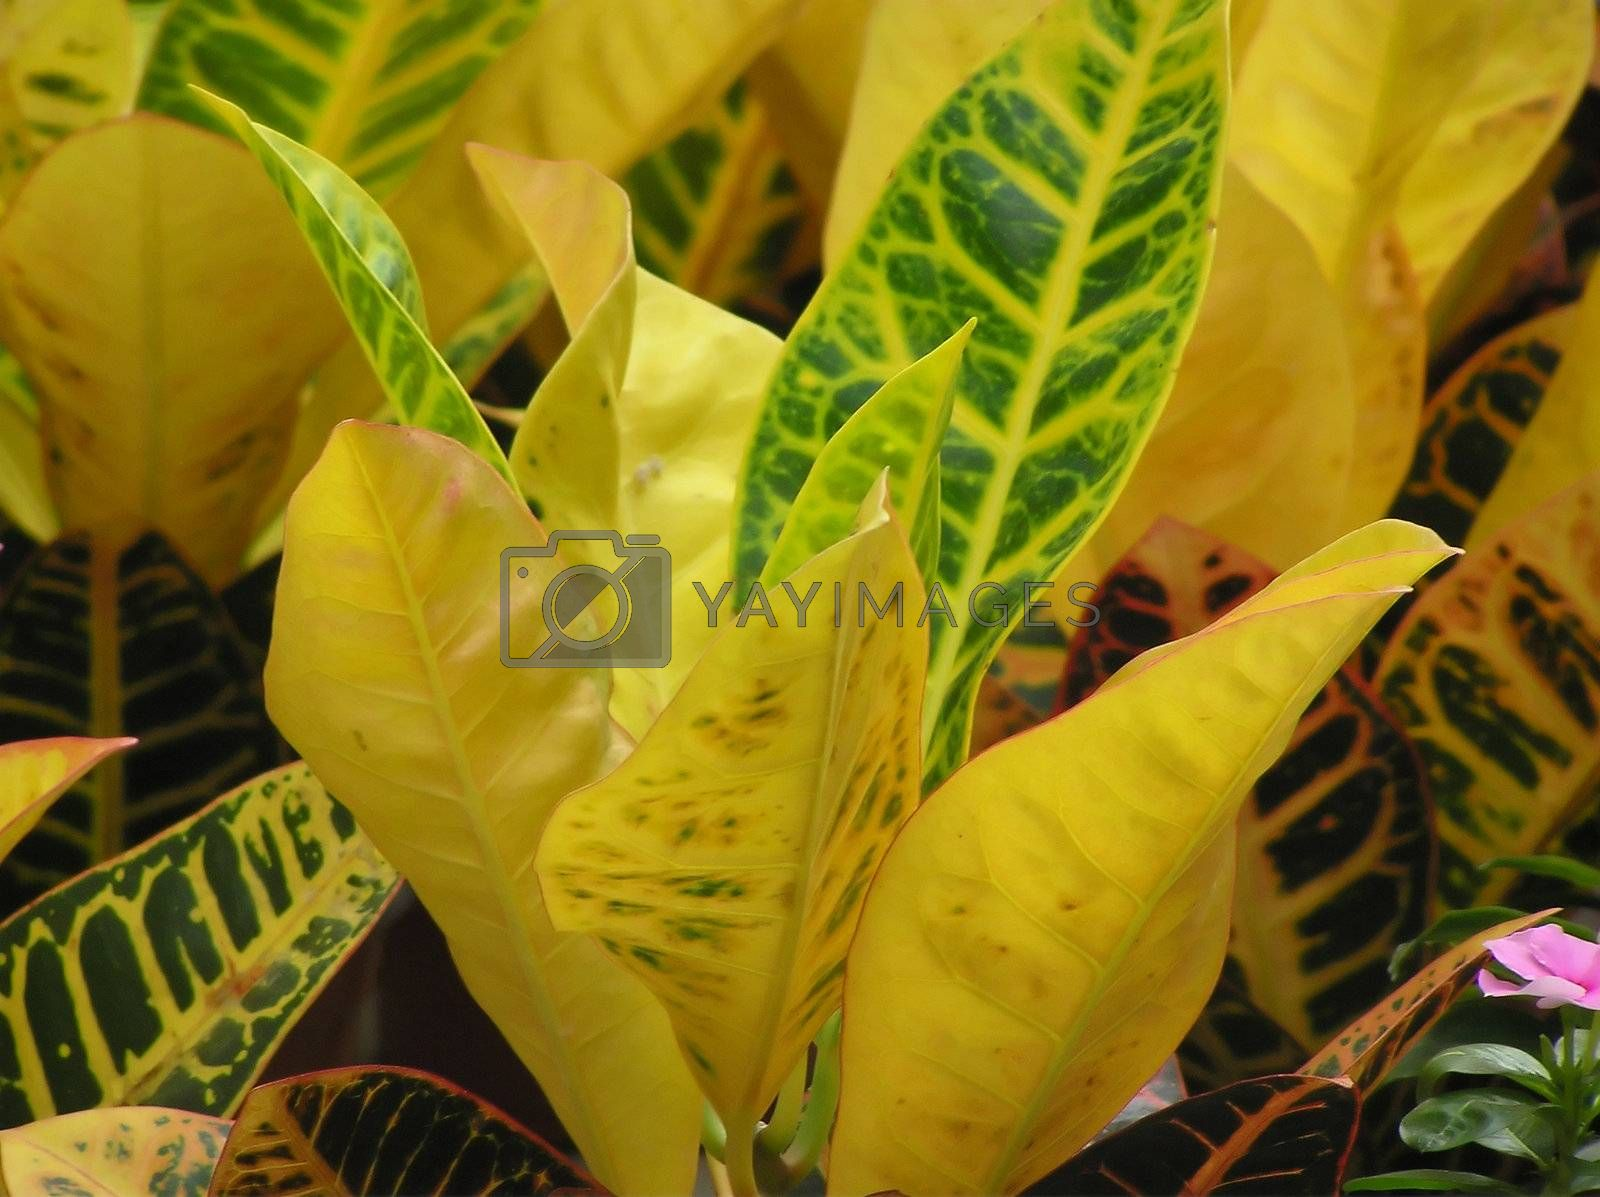 The abstract background representing leaves of exotic plants